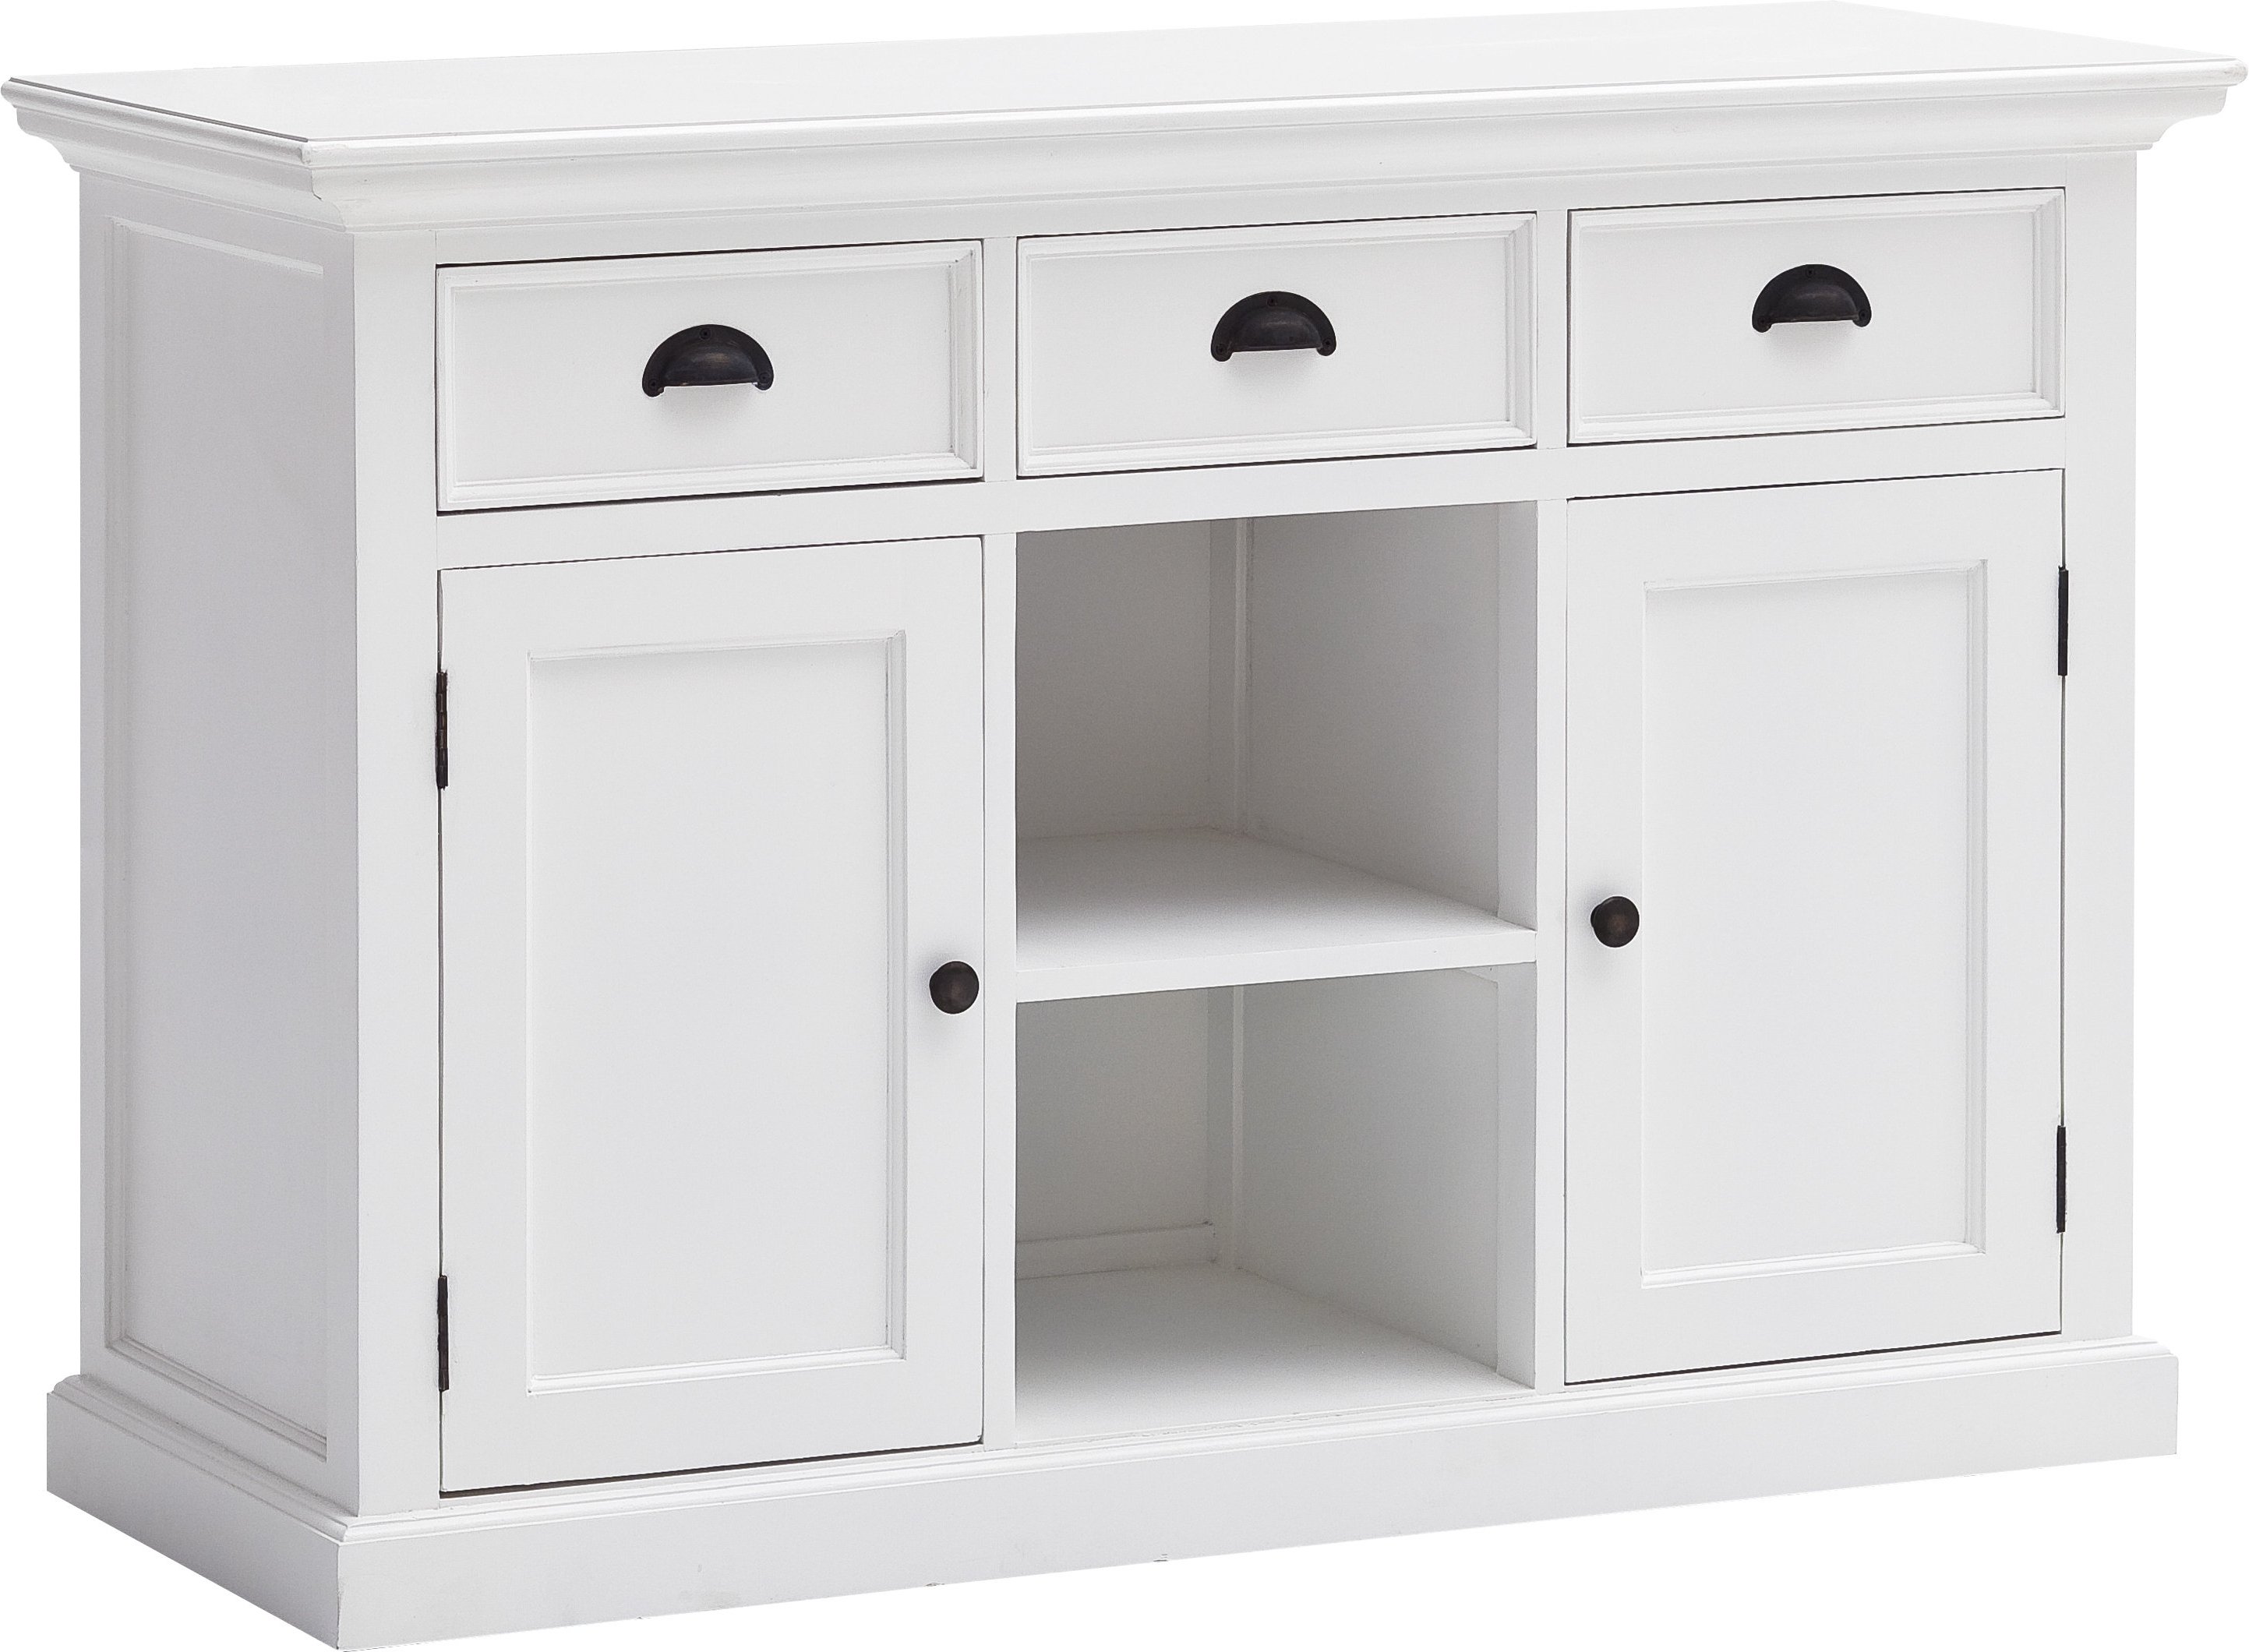 Amityville Wood Server & Reviews   Joss & Main Intended For Amityville Wood Sideboards (View 4 of 20)